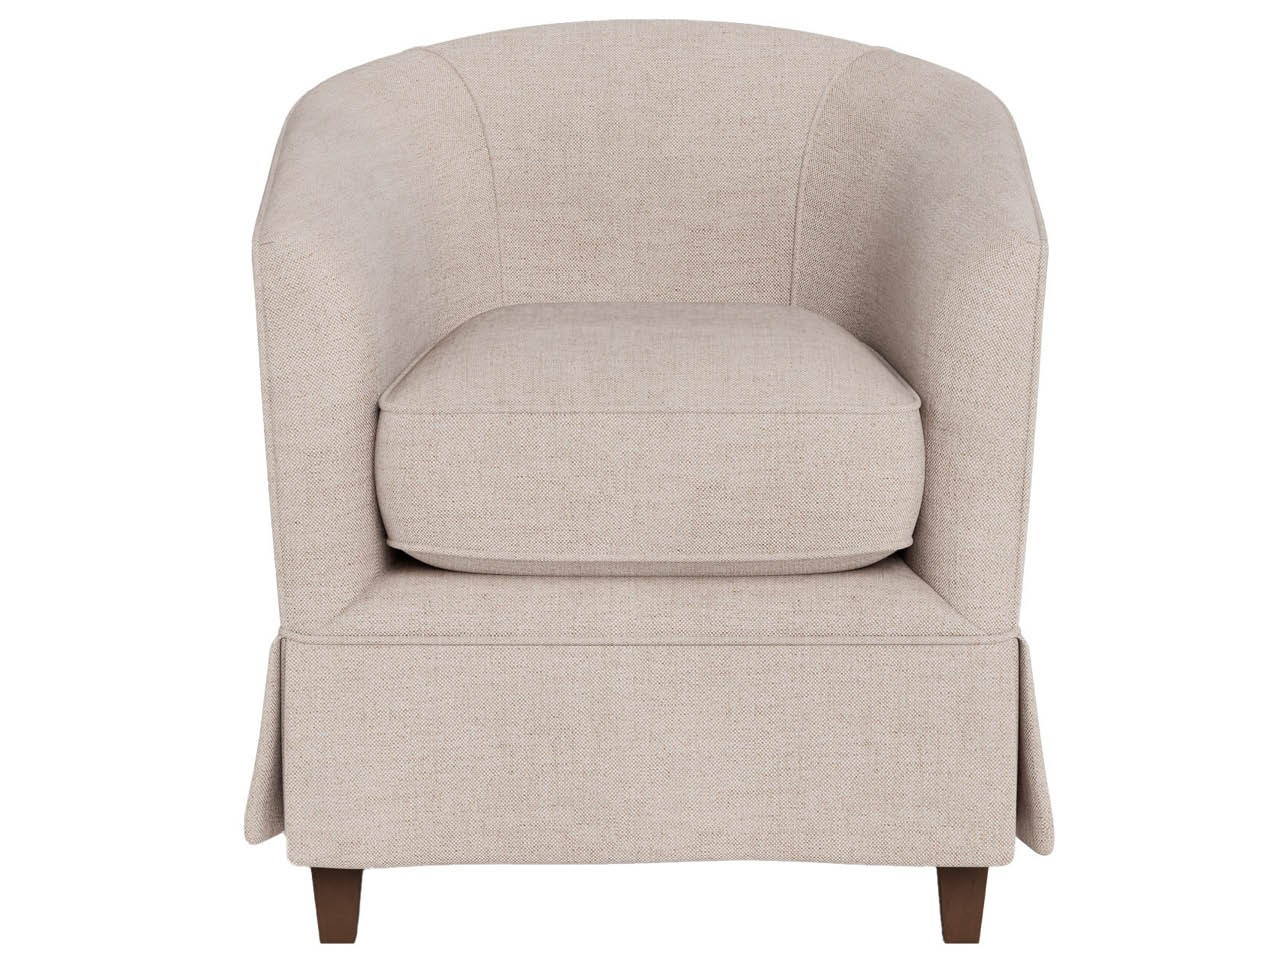 Ava Chair - Special Order